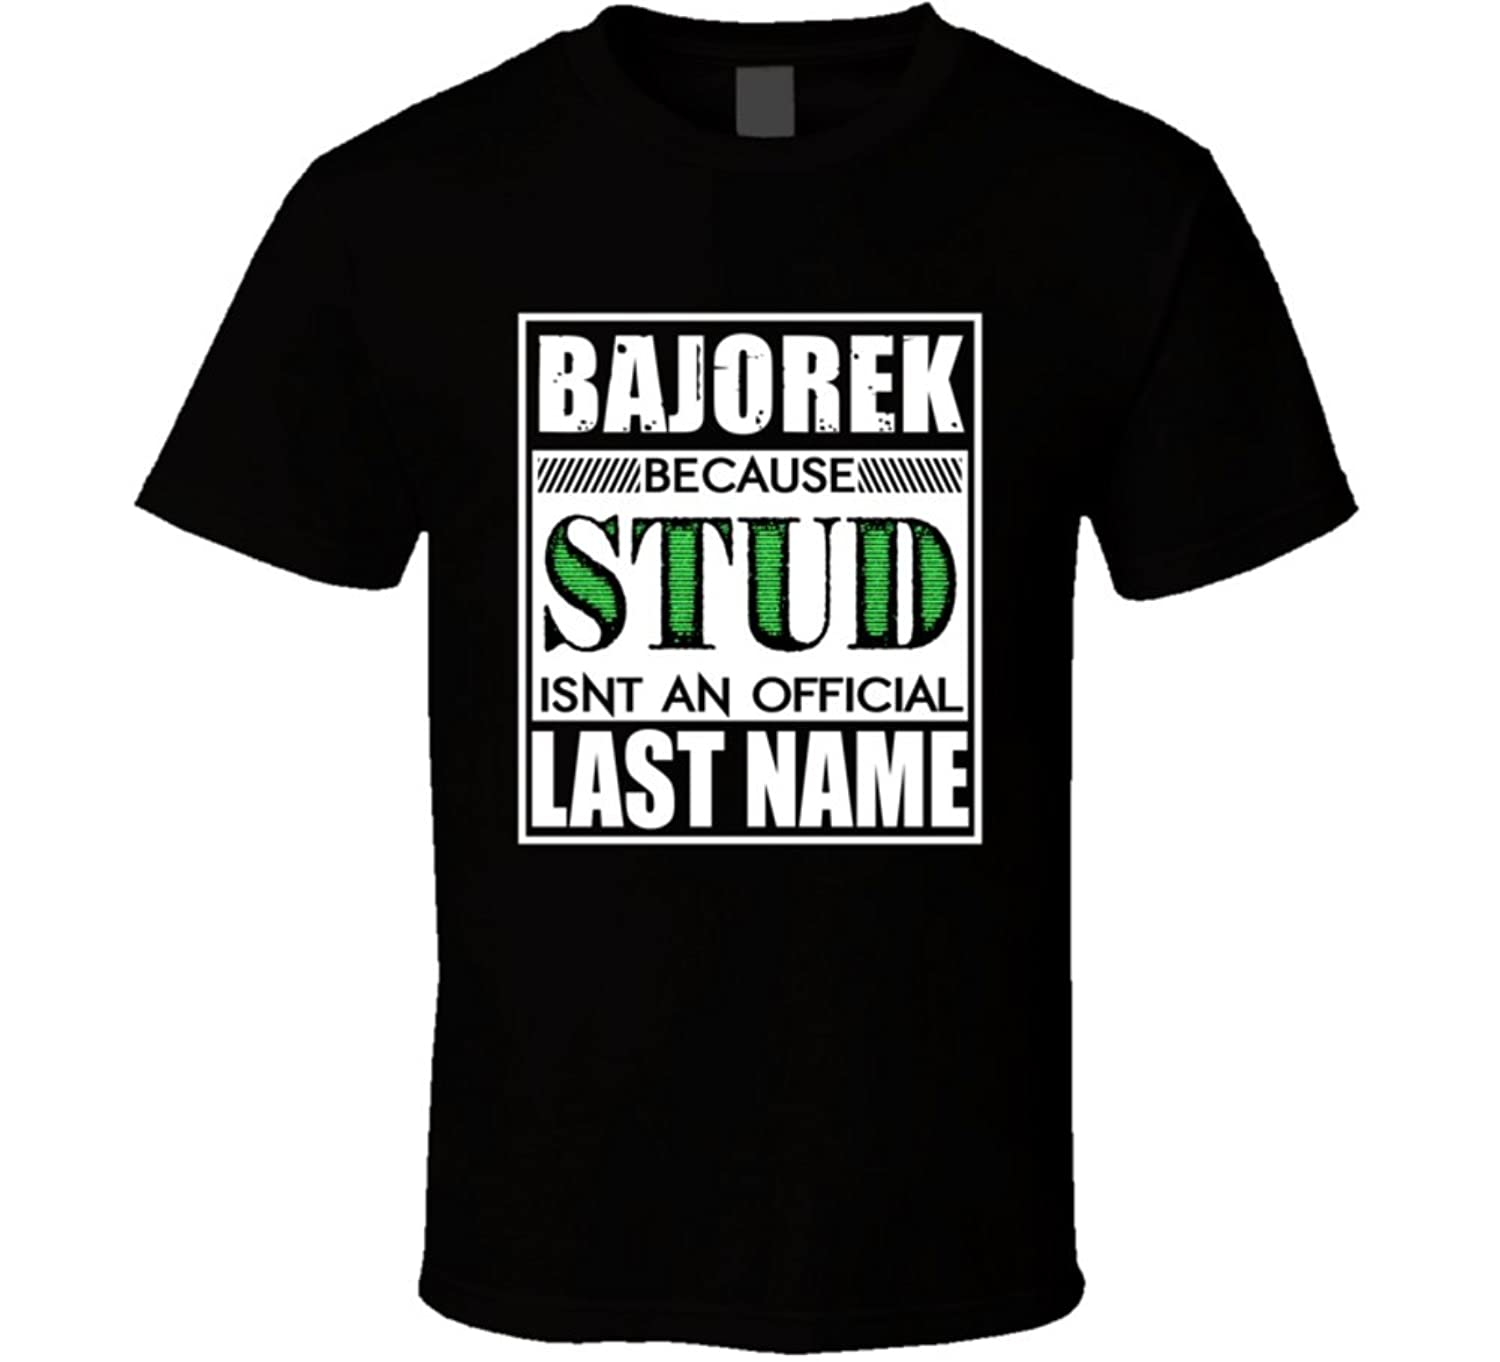 Bajorek Because Stud official Last Name Funny T Shirt